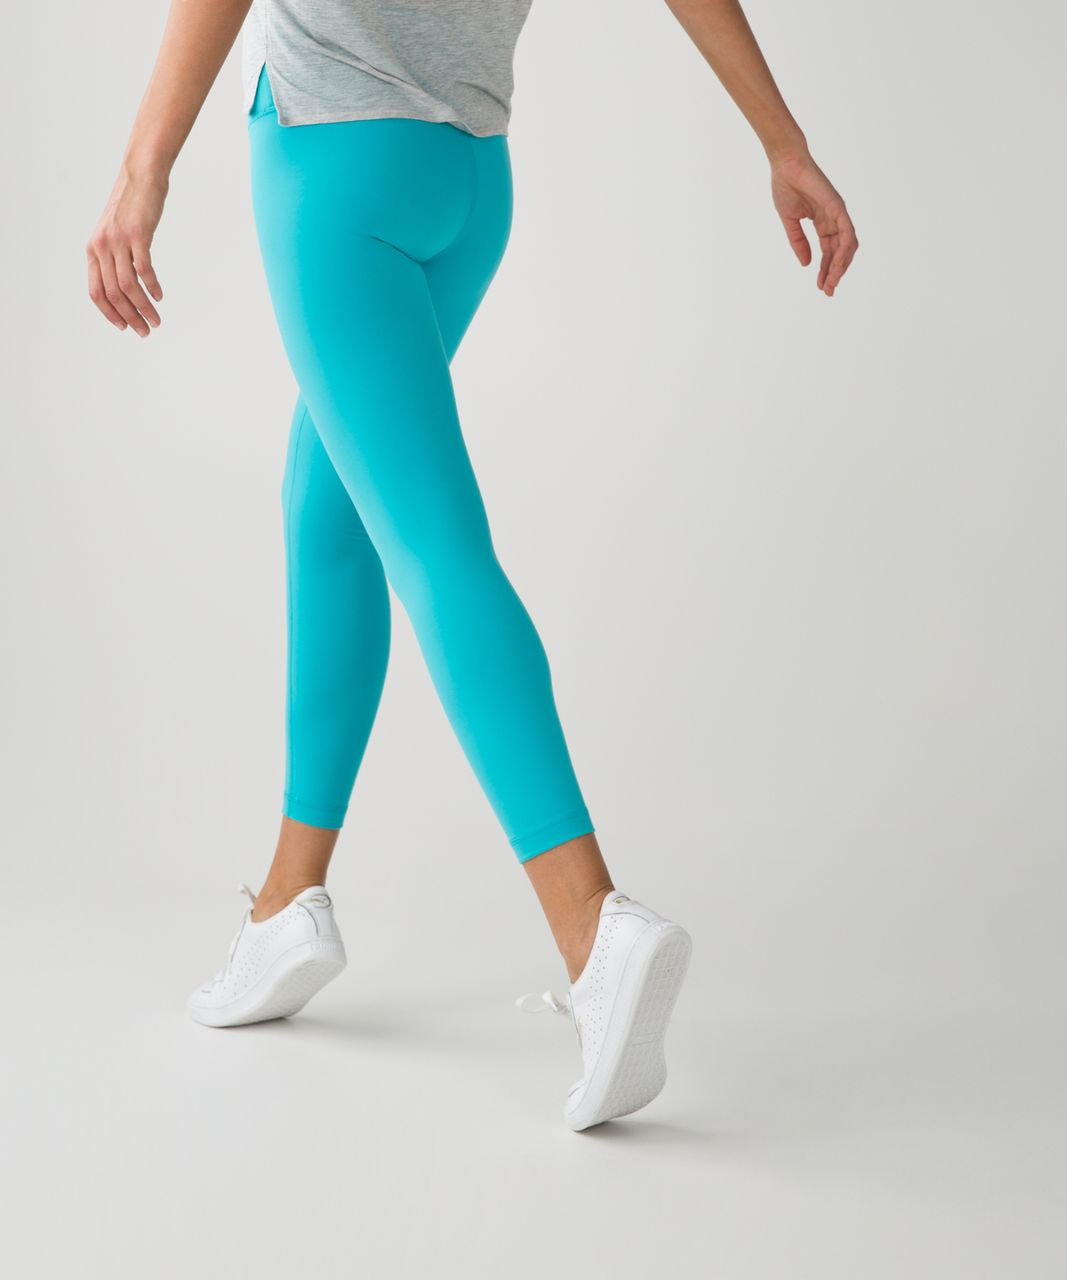 Lululemon High Times Pant *Full-On Luon - Peacock Blue